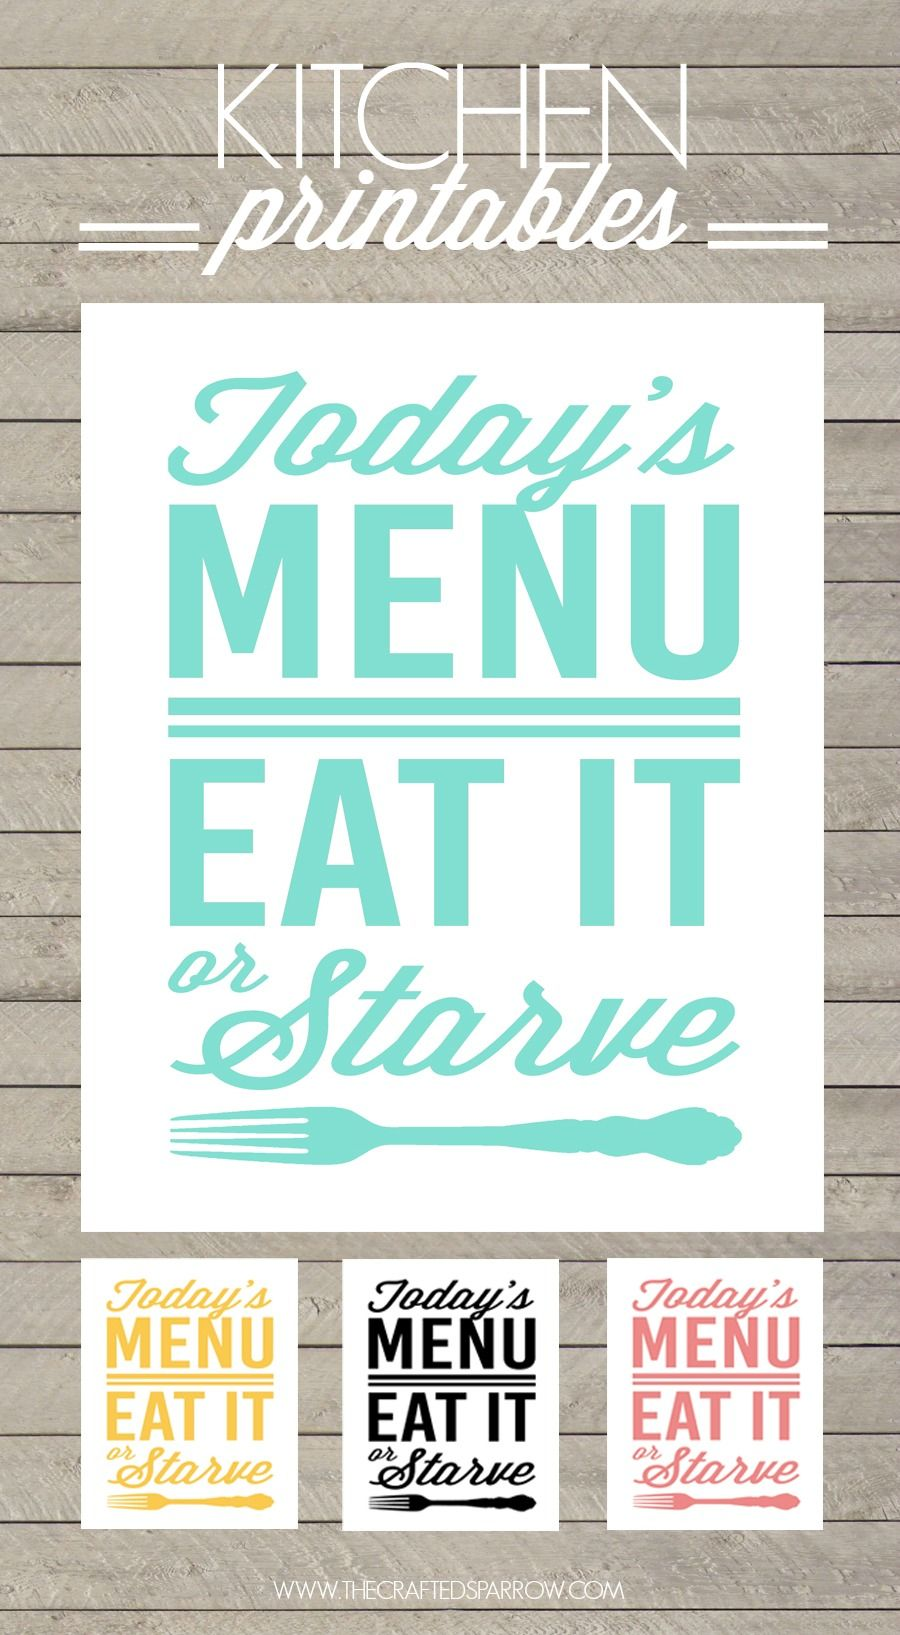 Free Kitchen Printables | Pinterest | Kitchens, Free and Kitchen ...